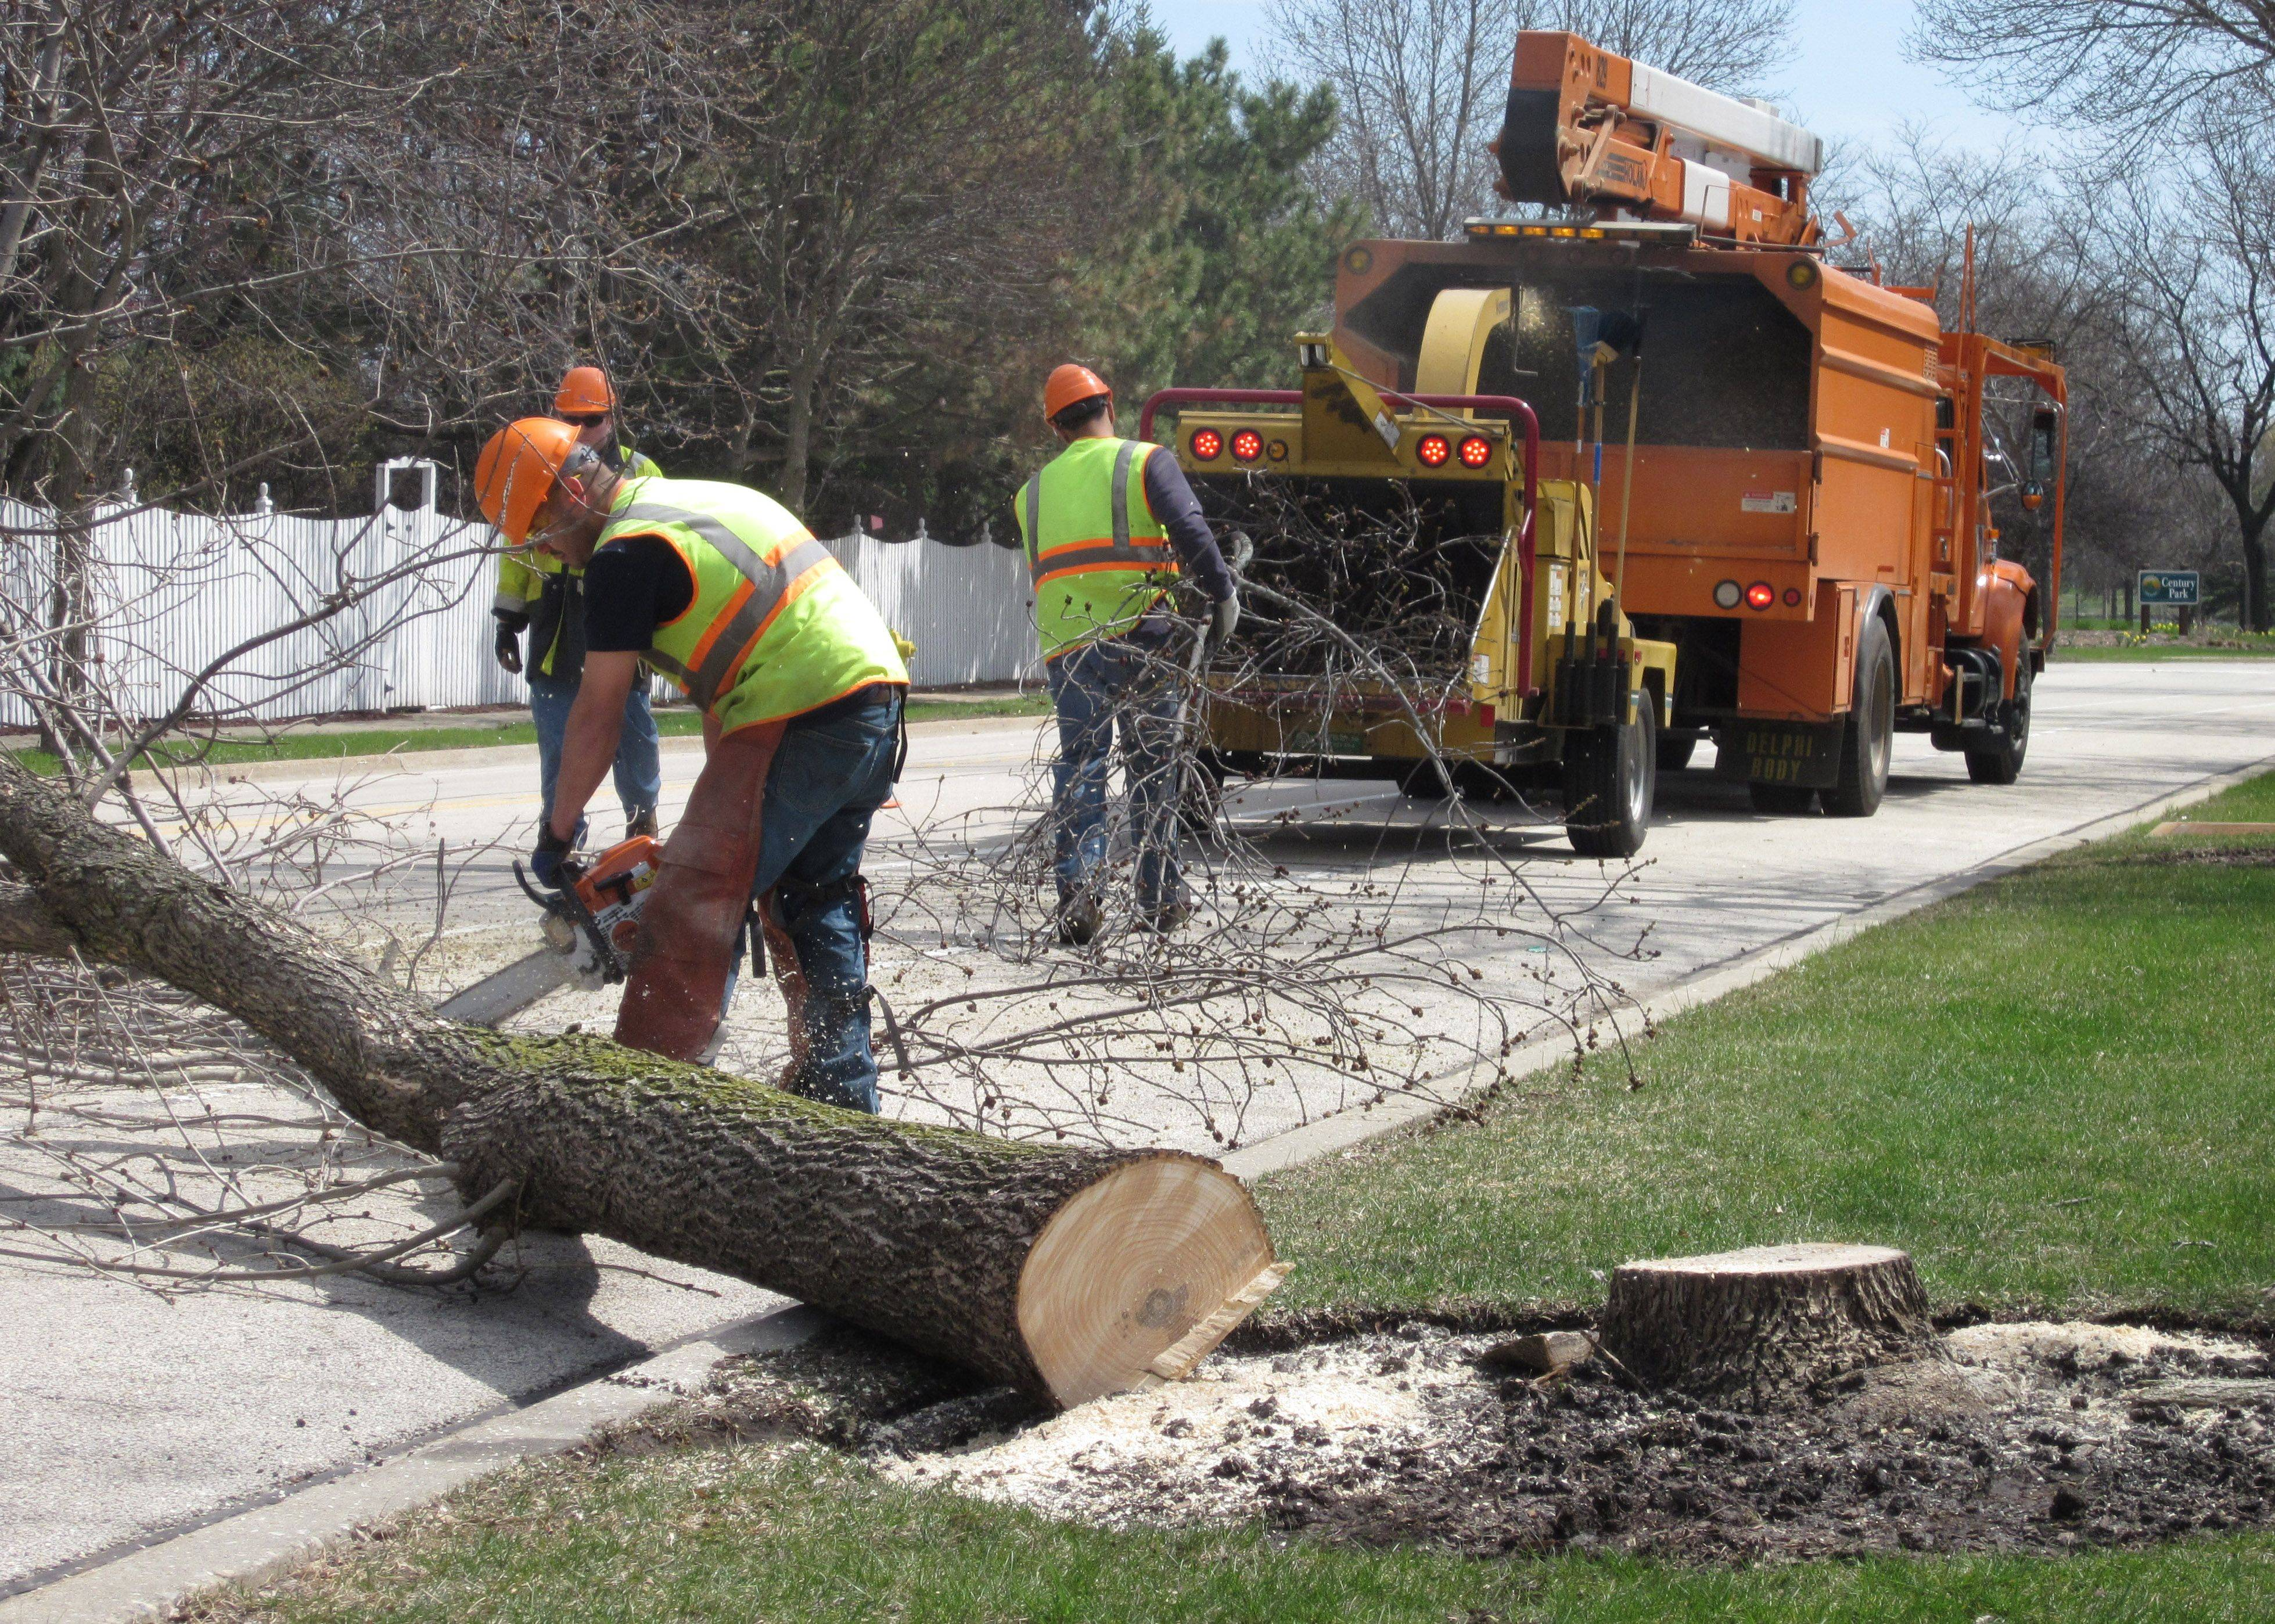 A crew from Vernon Hills' forestry and ground division remove an infected ash tree Thursday along Greenleaf Drive, which has been hit hard by the emerald ash borer.